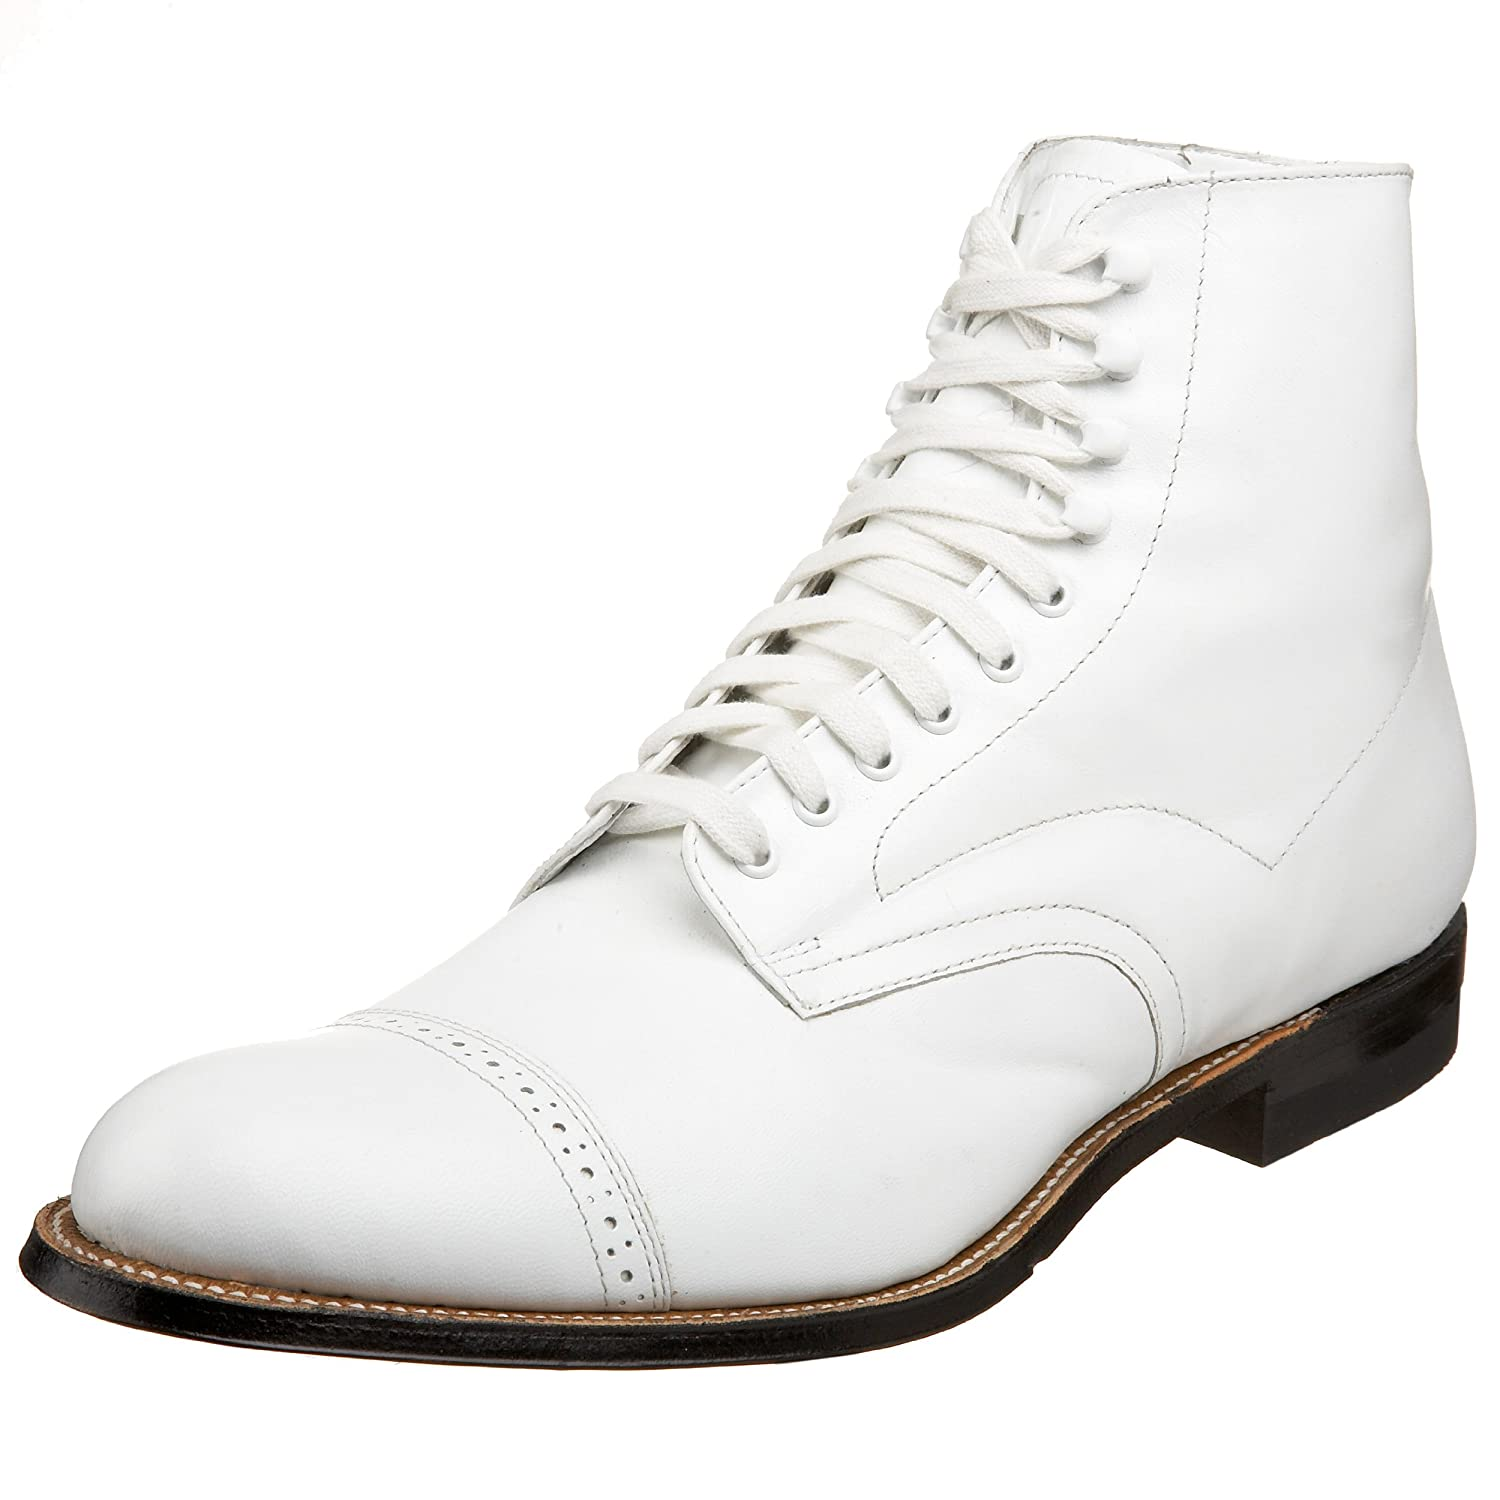 Edwardian Men's Shoes & Boots | 1900, 1910s Stacy Adams Mens Madison Boot $135.00 AT vintagedancer.com